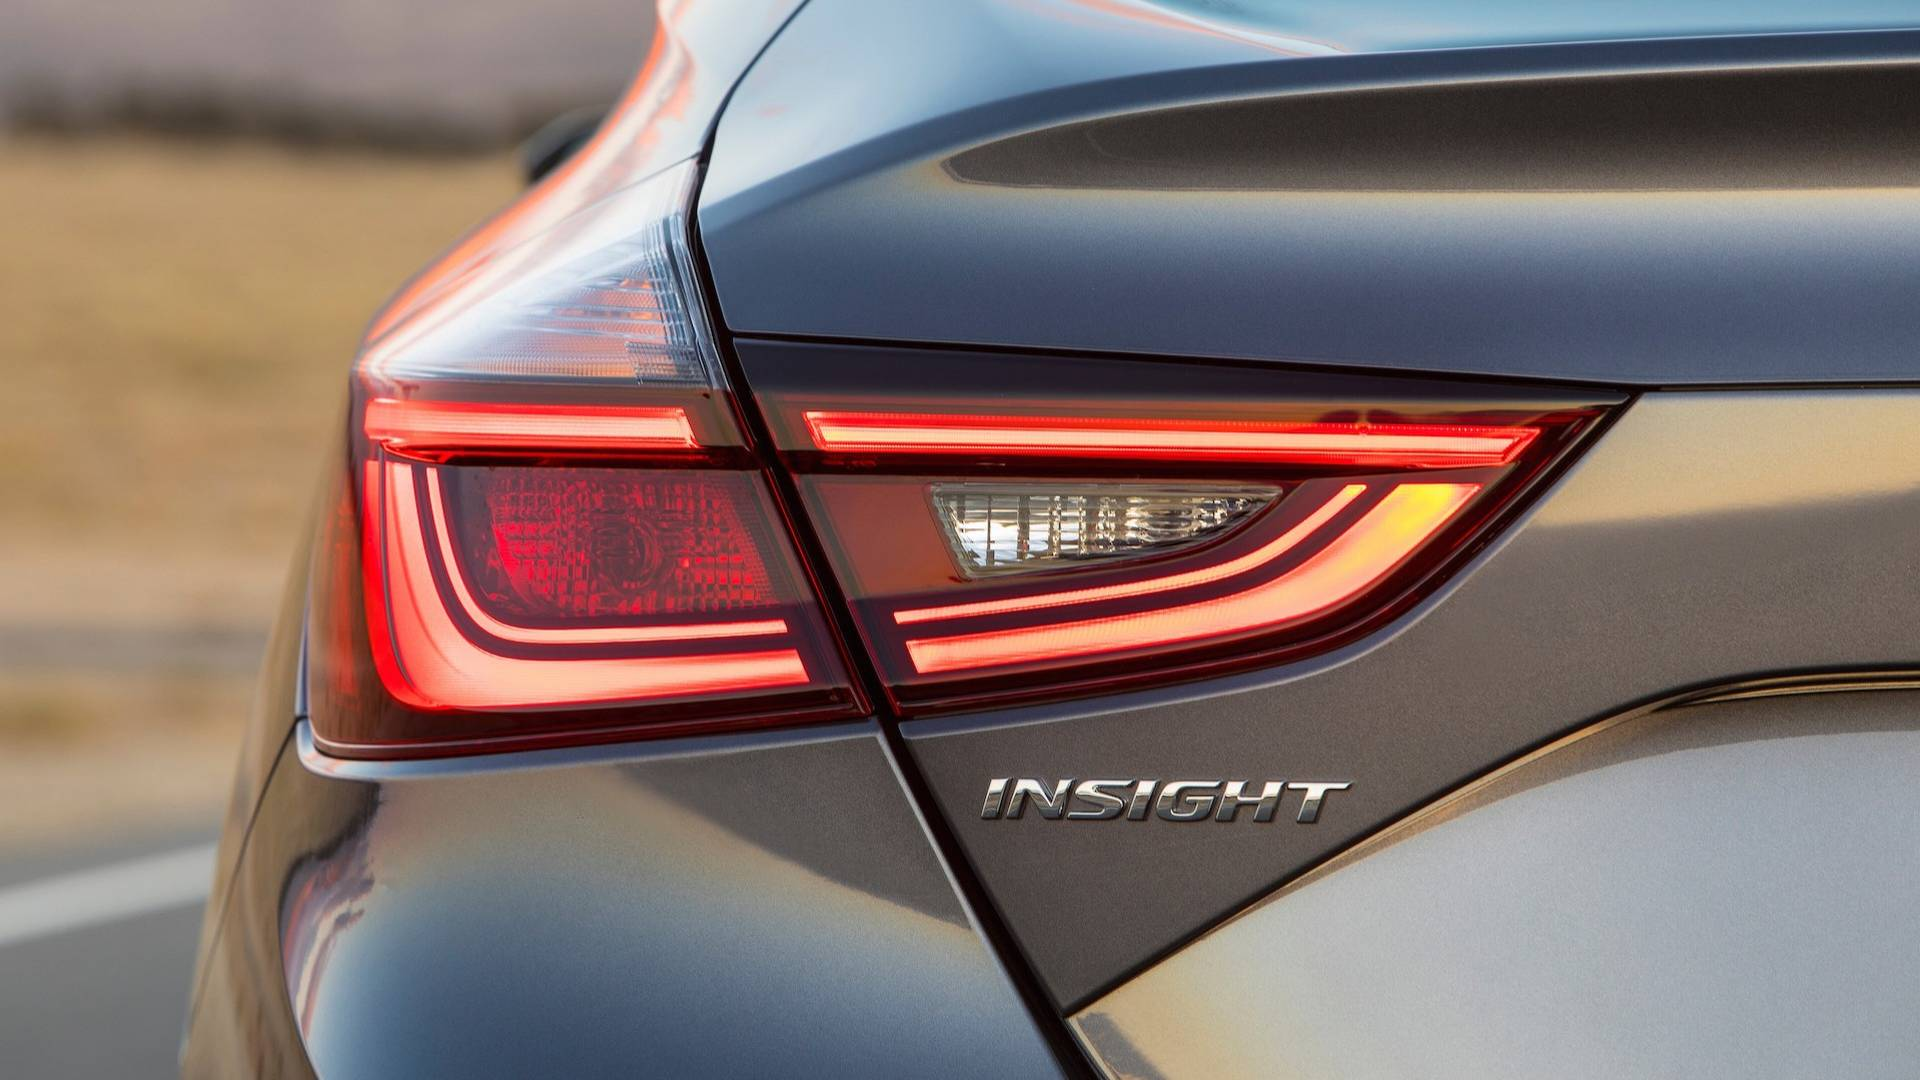 2019-honda-insight (19)